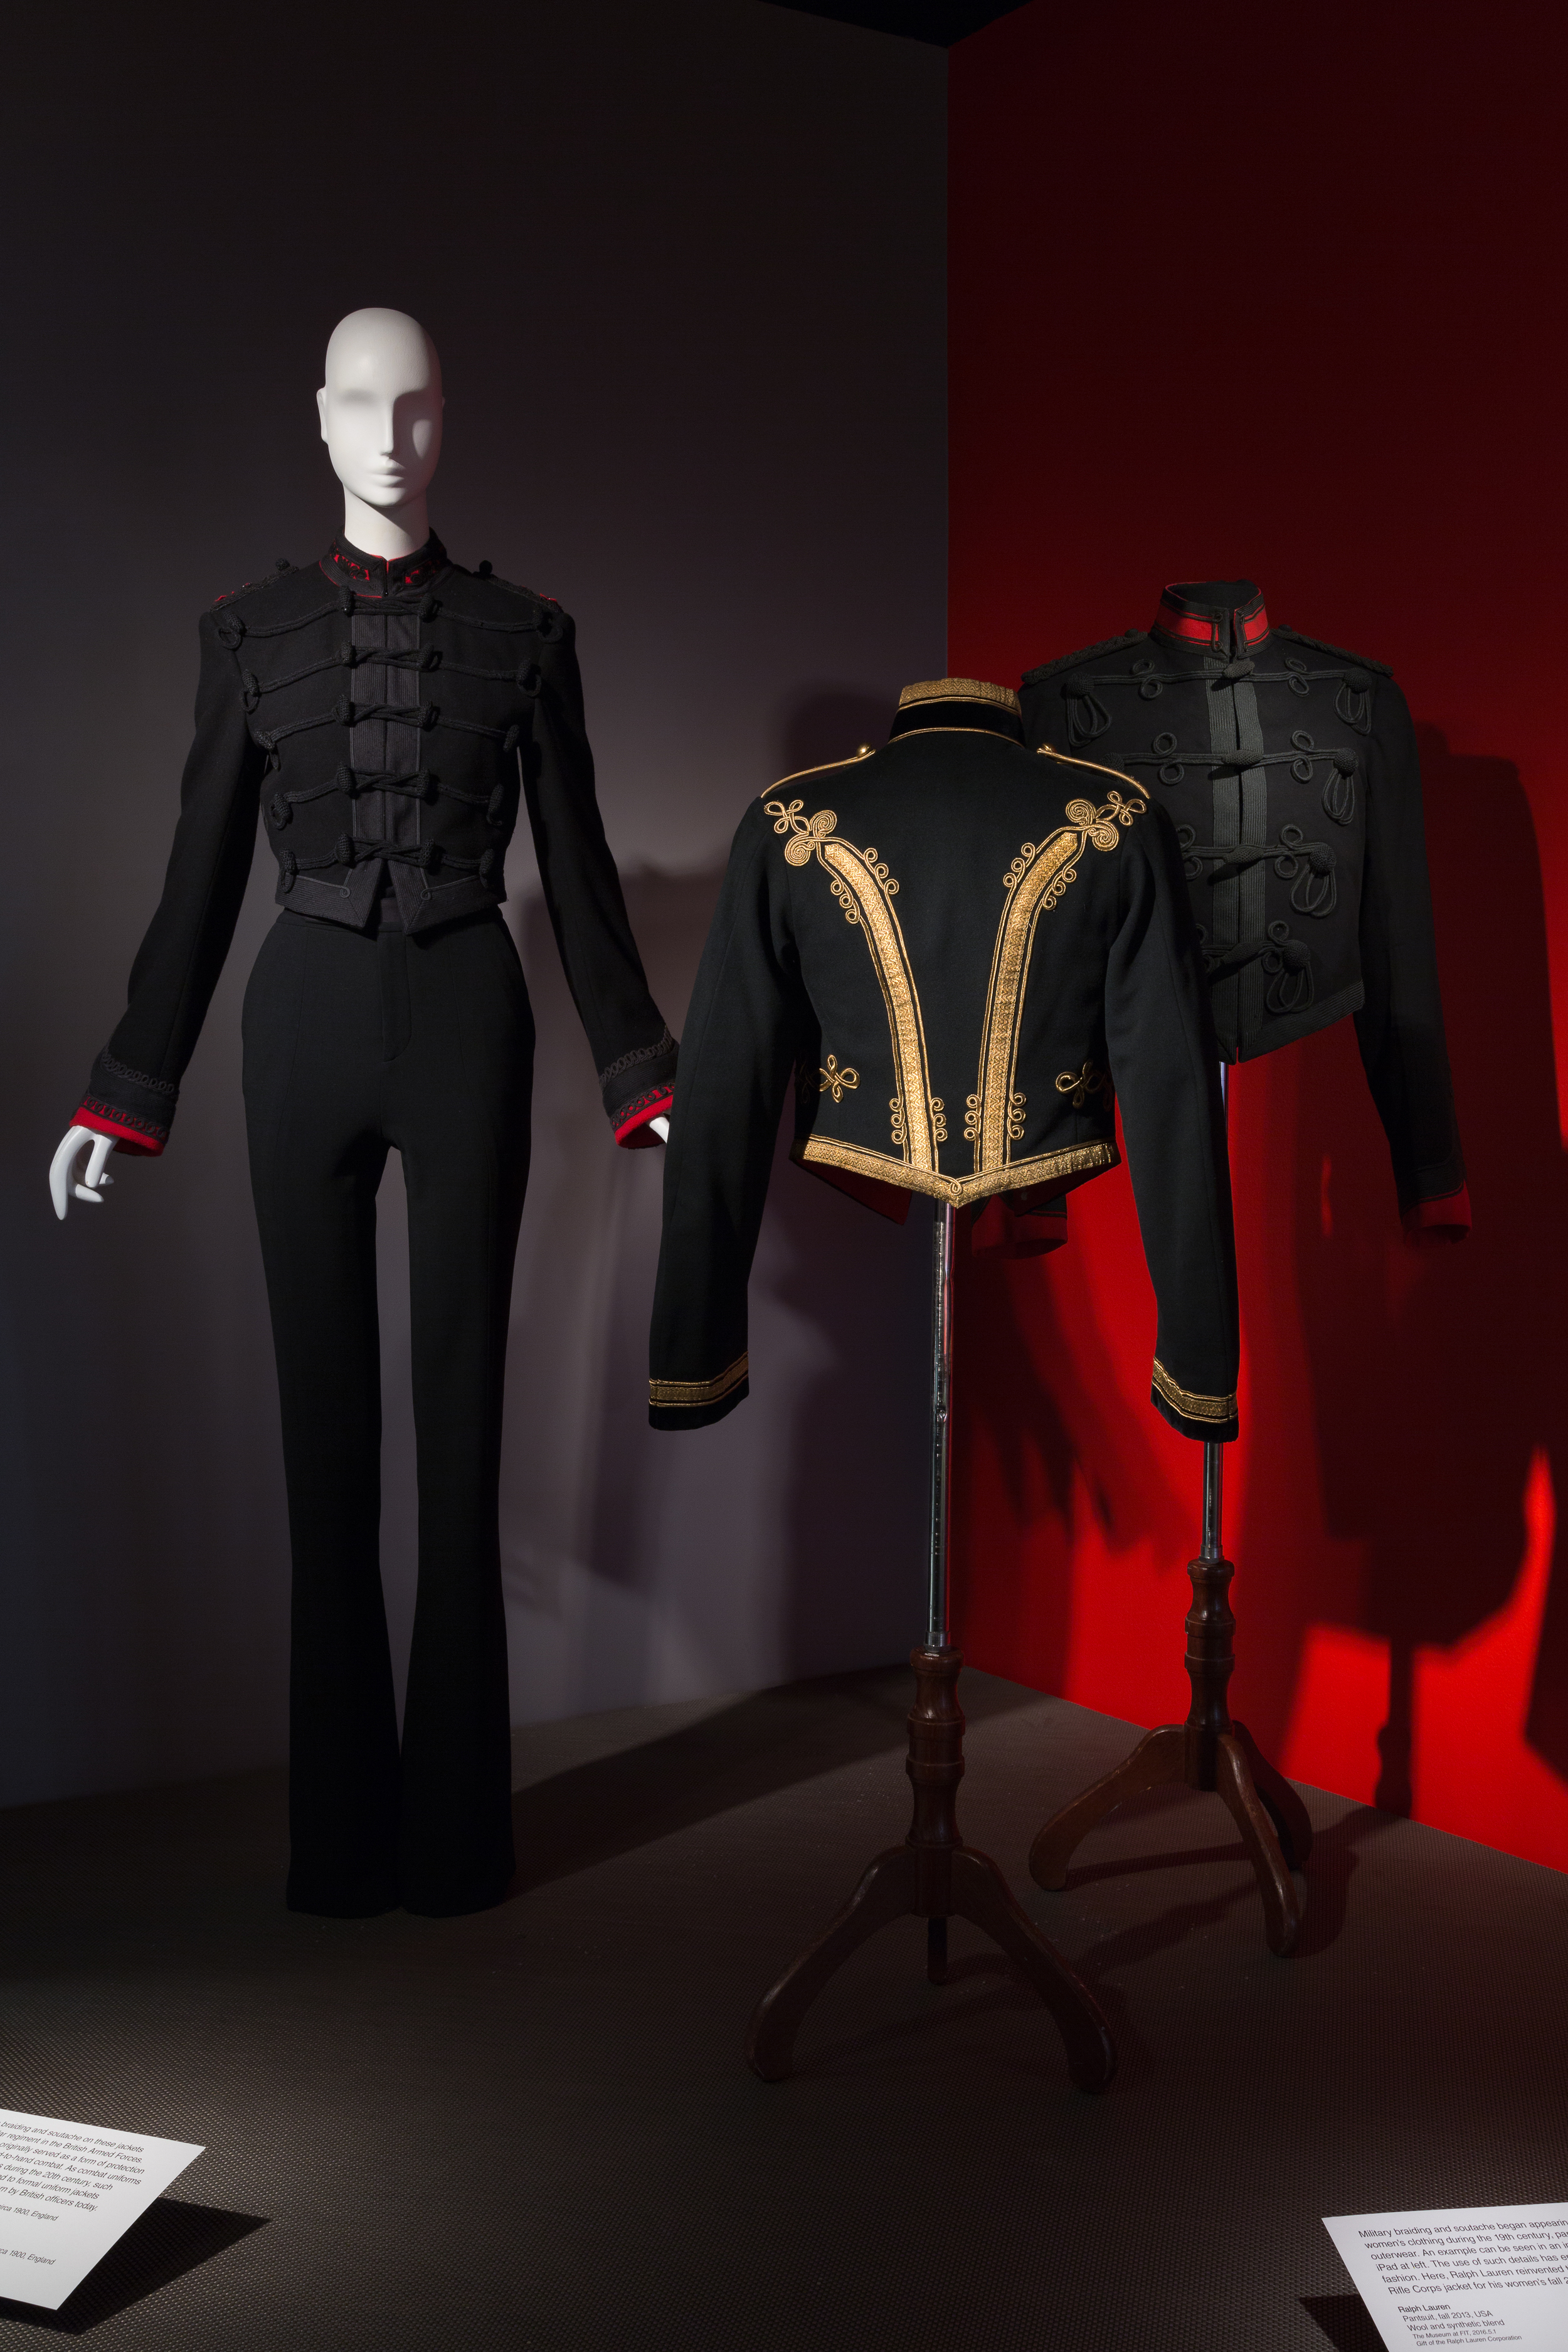 """(left) Ralph Lauren, """"pantsuit,"""" Fall 2013, wool and synthetic blend, USA. Gift of the Ralph Lauren Corporation. (center) Man's Royal Artillery """"mess dress"""" jacket, circa 1900, black and red wool, metallic thread, England. Gift of Adele Simpson. (right) Man's King's Royal Rifle Corps """"mess dress"""" jacket, circa 1900, green wool, red wool, black braid, England. Gift of Adele Simpson. Photo courtesy of Museum at FIT."""